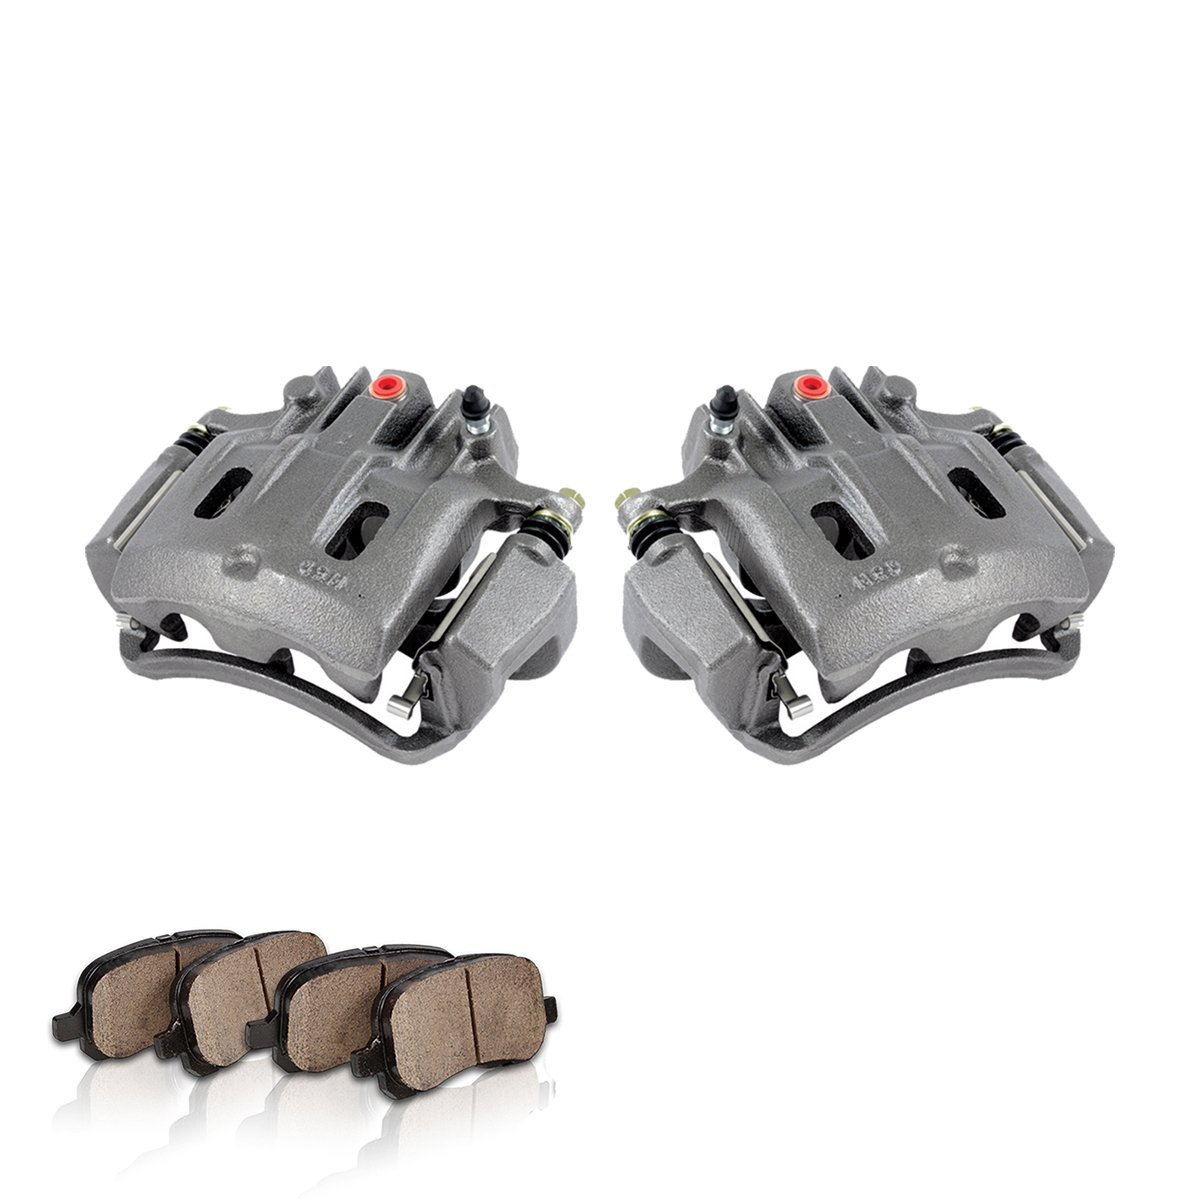 COEK00468 [2] REAR Premium Loaded OE Caliper Assembly Set + Quiet Low Dust Ceramic Brake Pads by Callahan Brake Parts